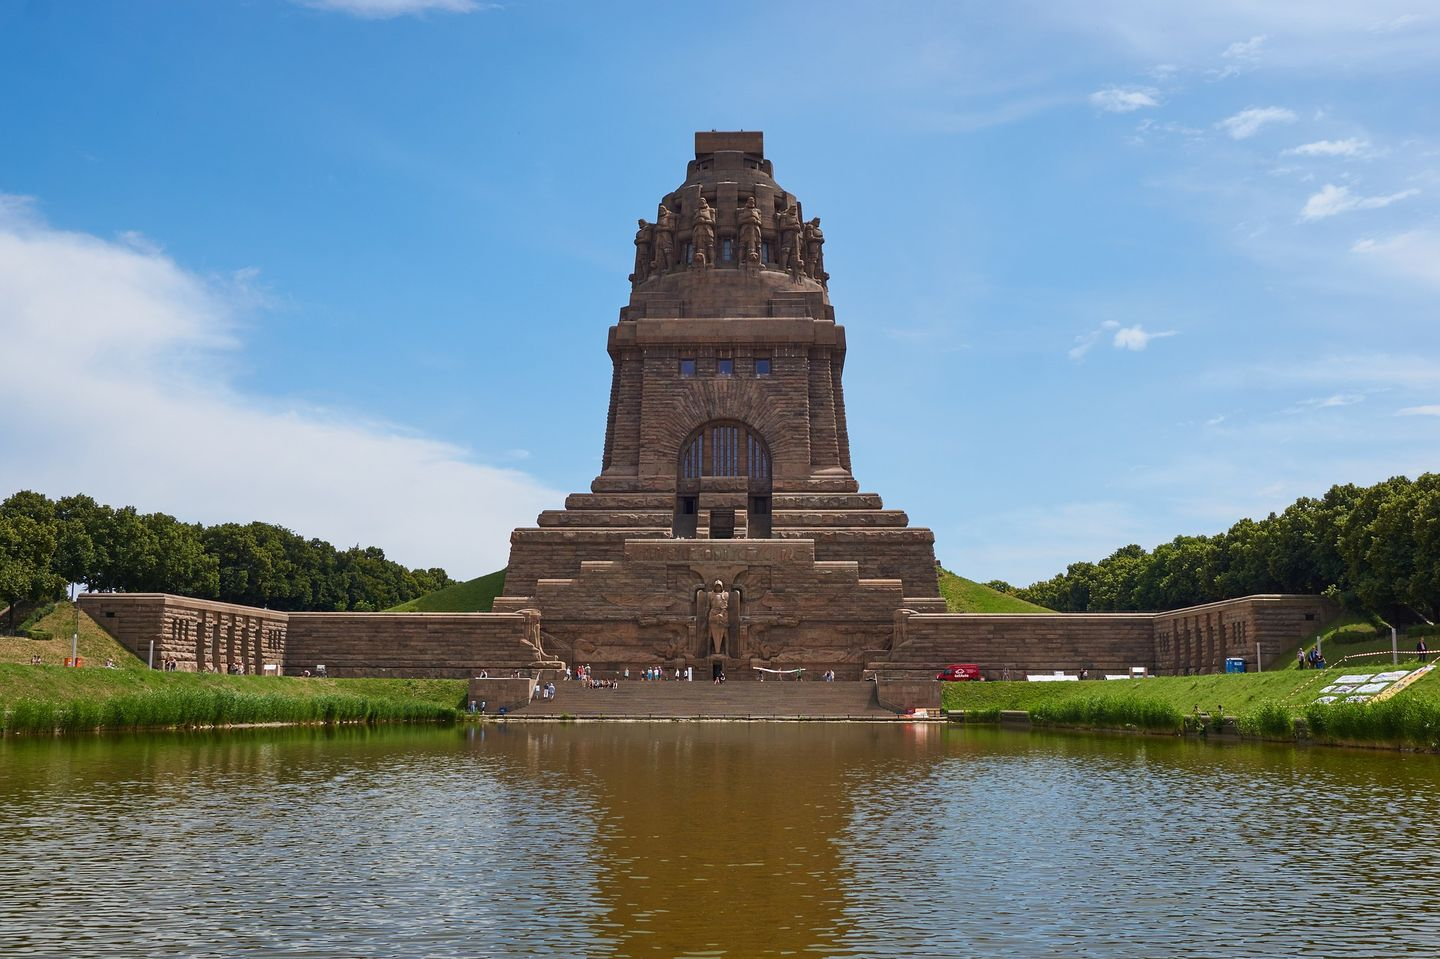 Panorama of the Monument to the Battle of the Nations